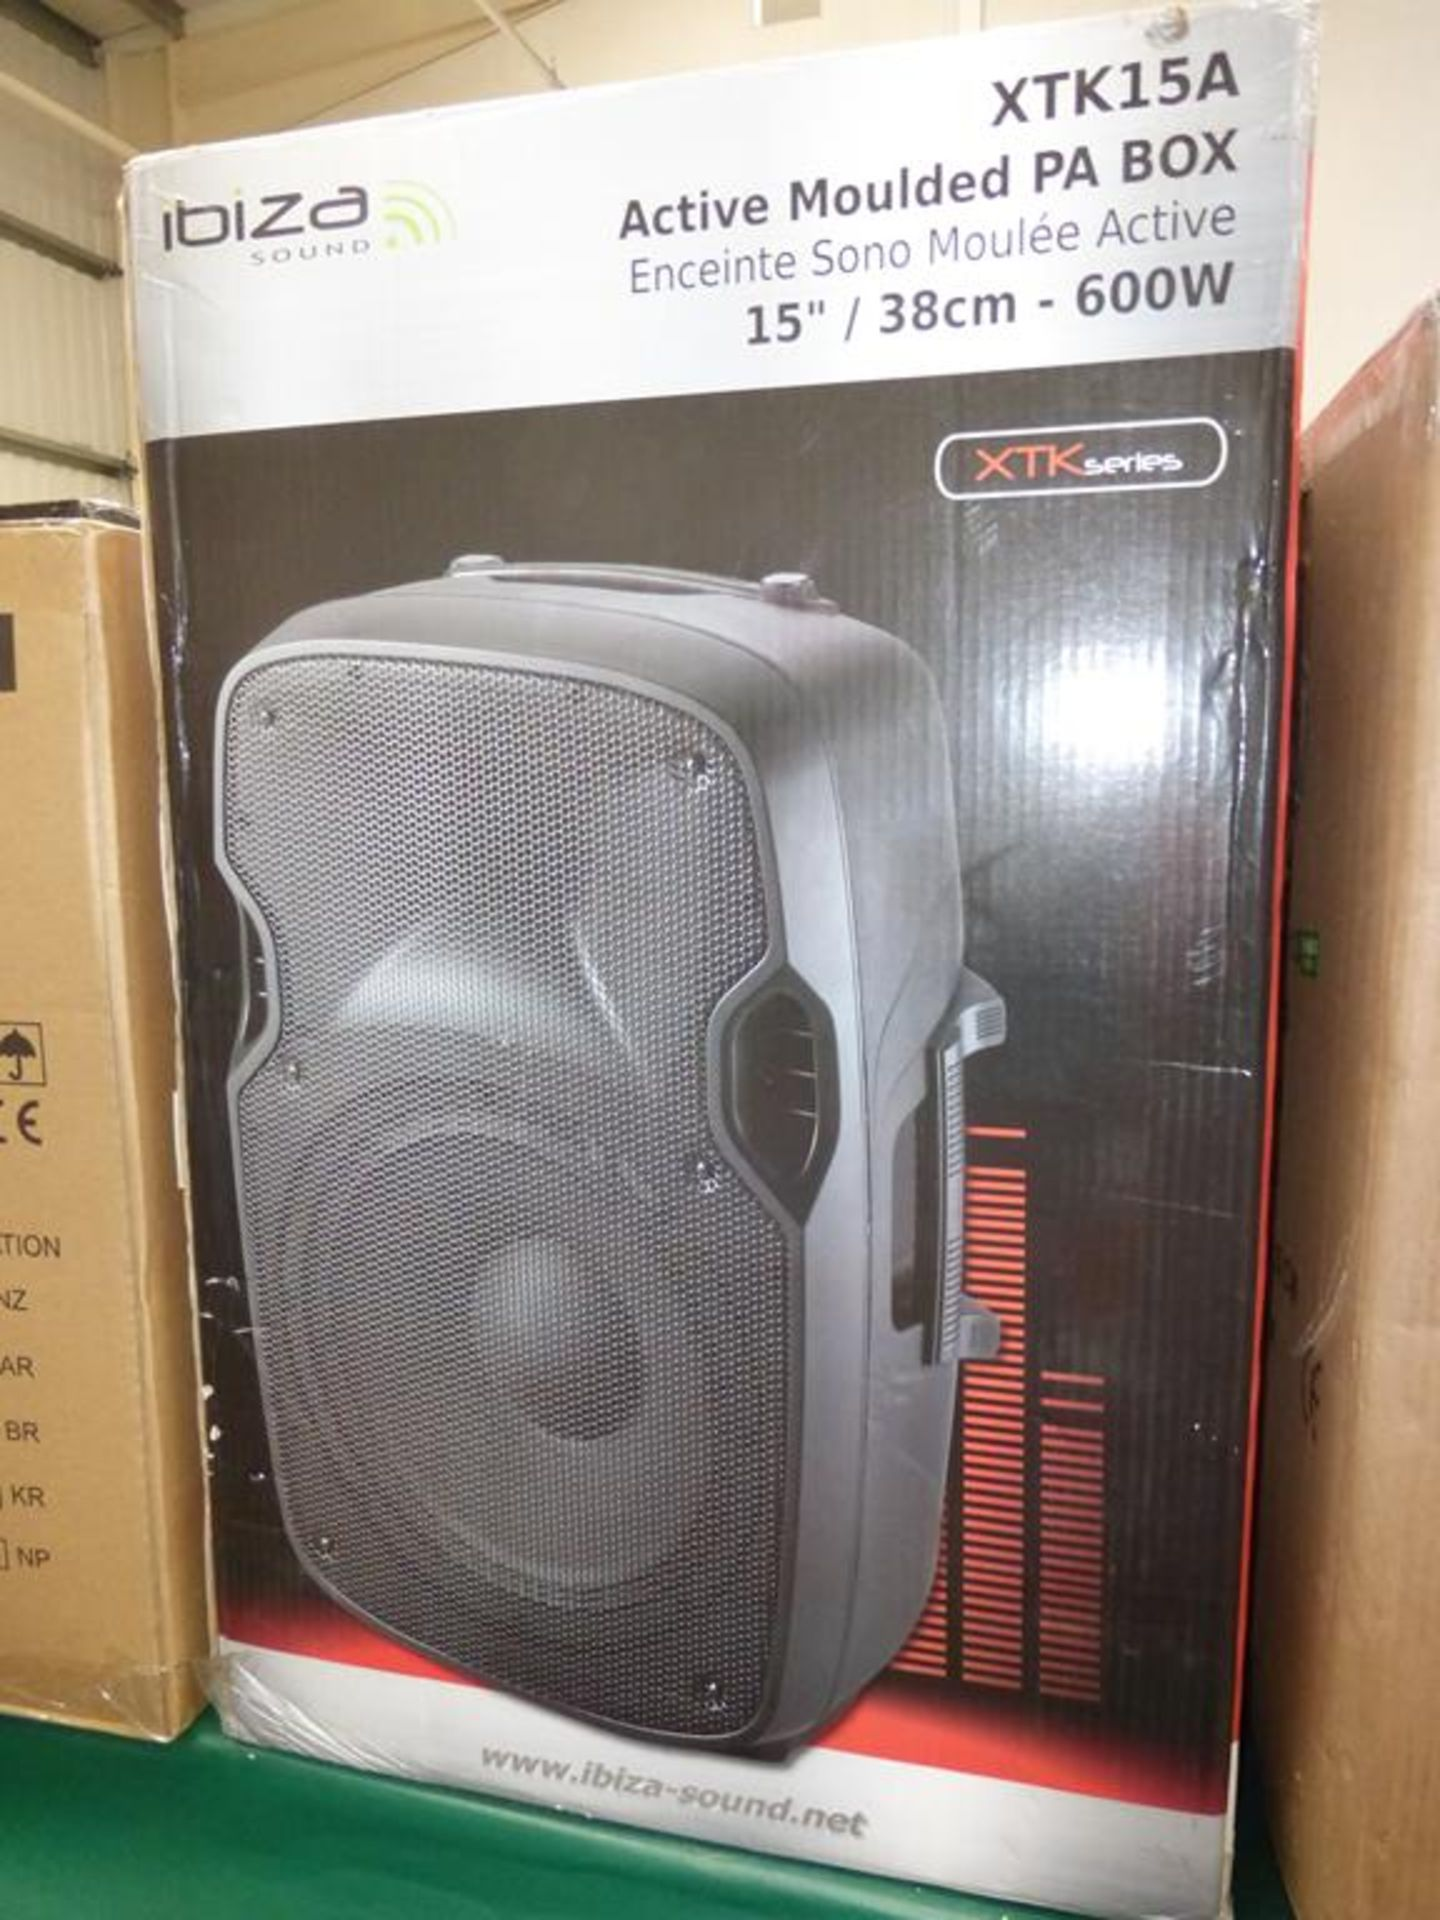 Lot 16 - * Ibiza Sound XTK15A 600W 15'' Active Moulded PA Box Speaker, RRP £200